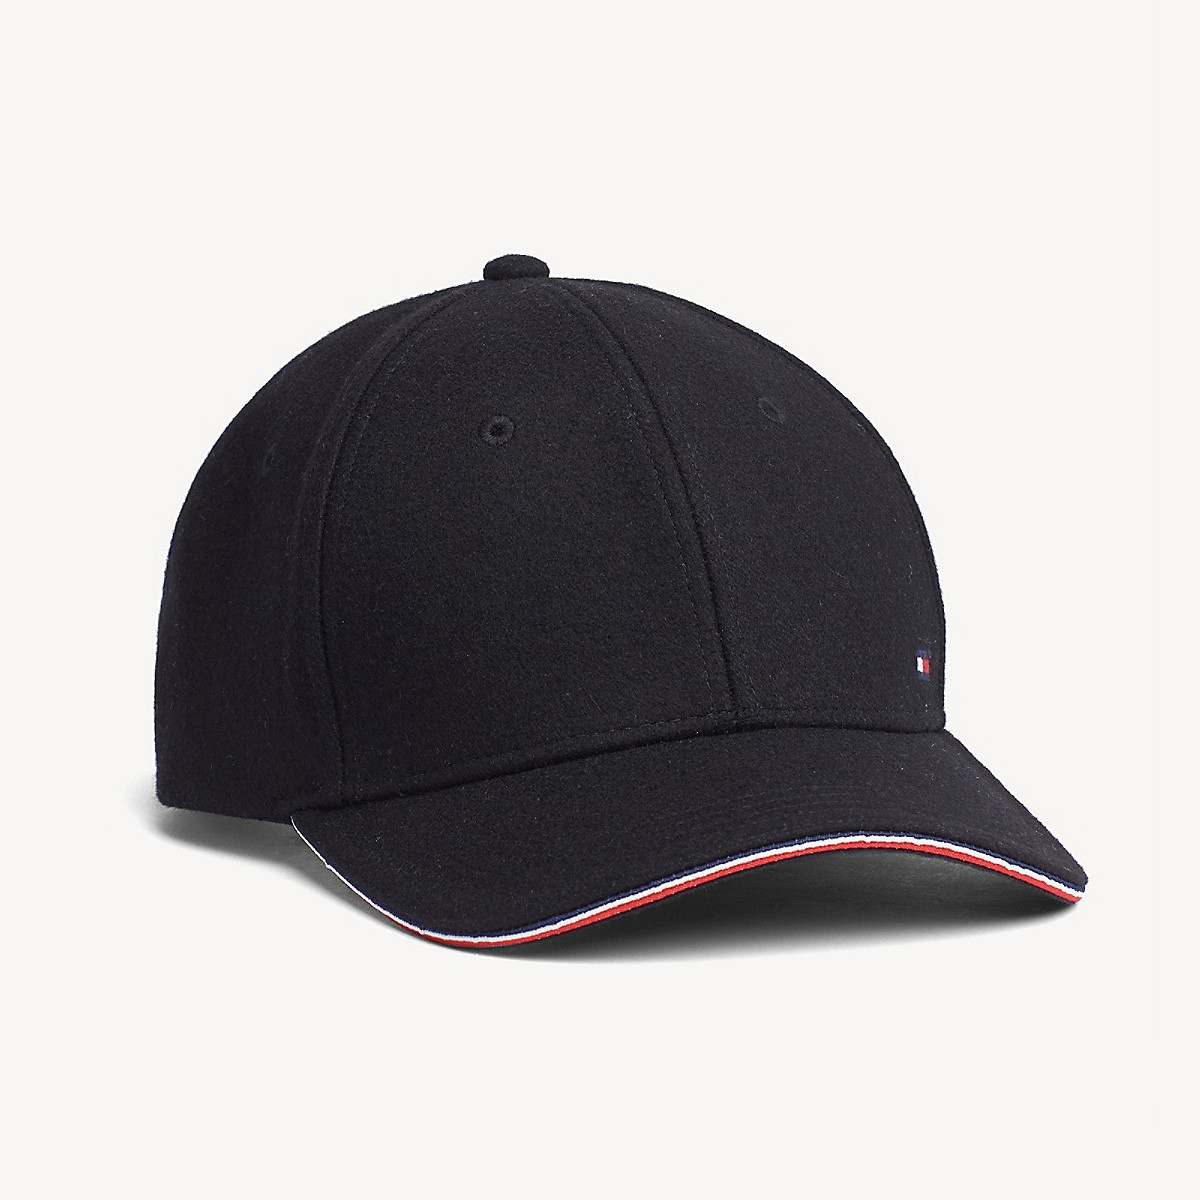 non-tommy-hilfiger-34